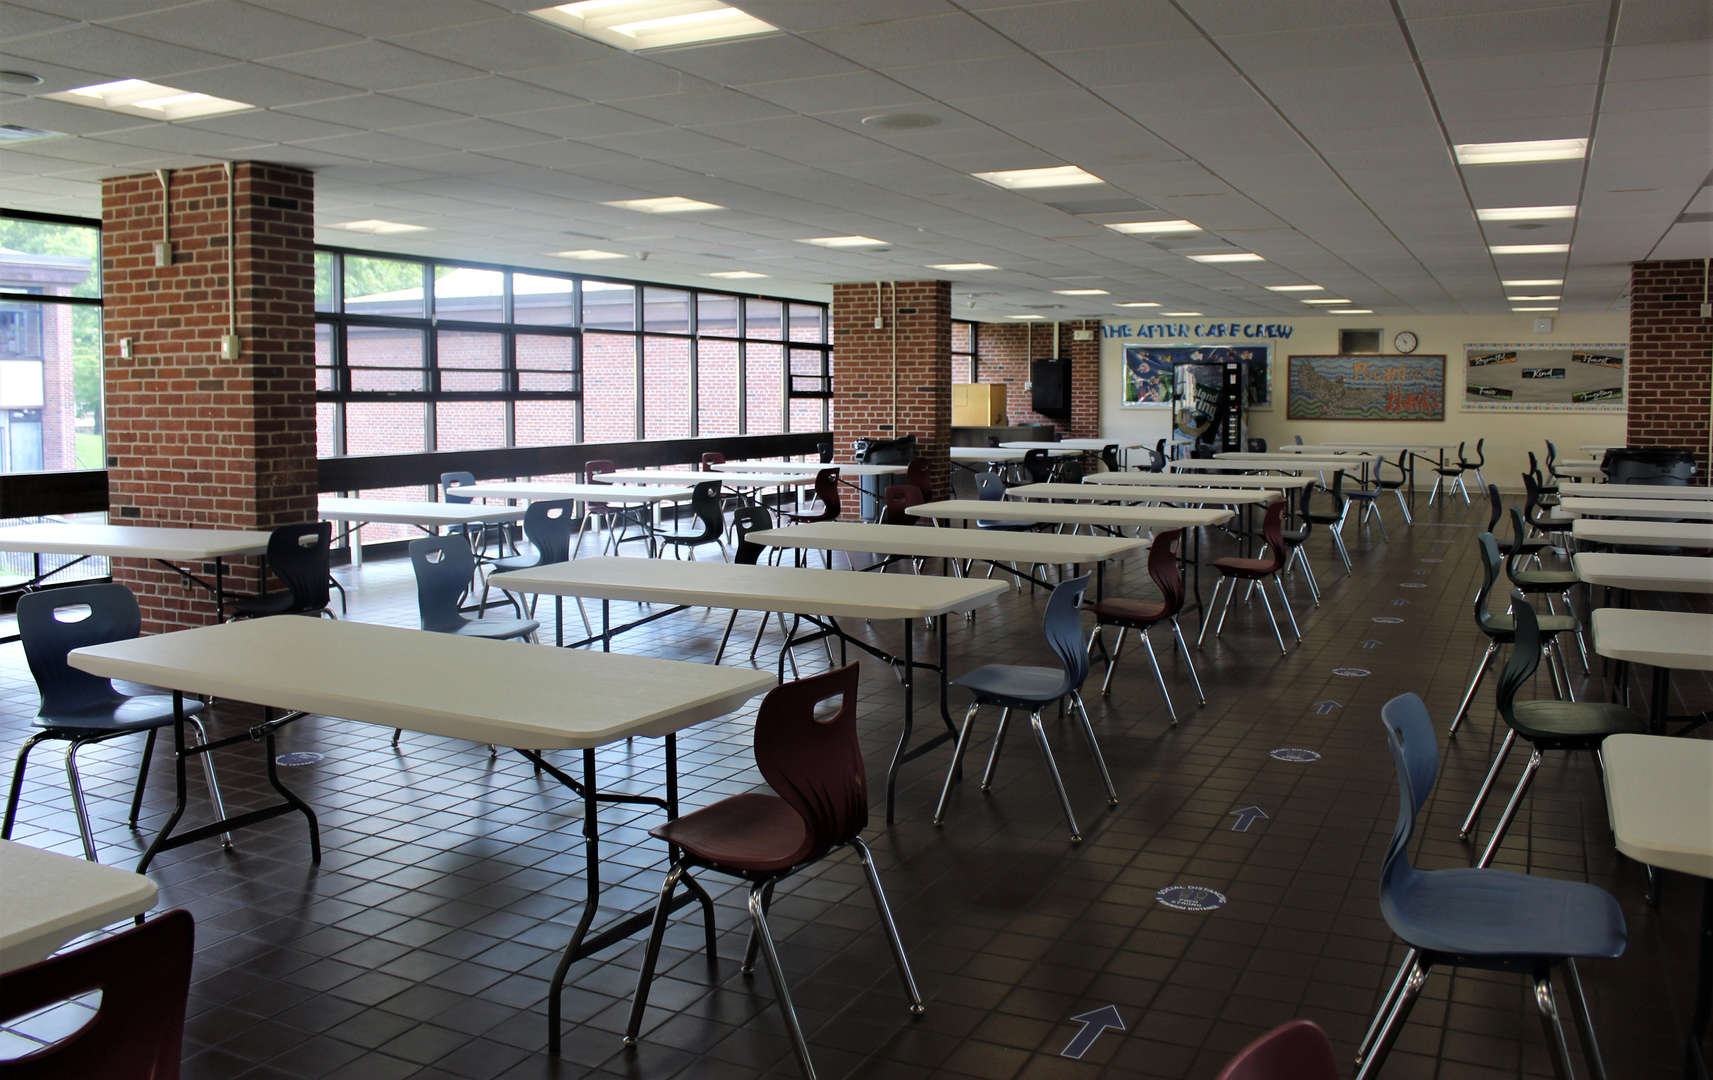 Photo of the cafeteria, with long tables and room for two students only.